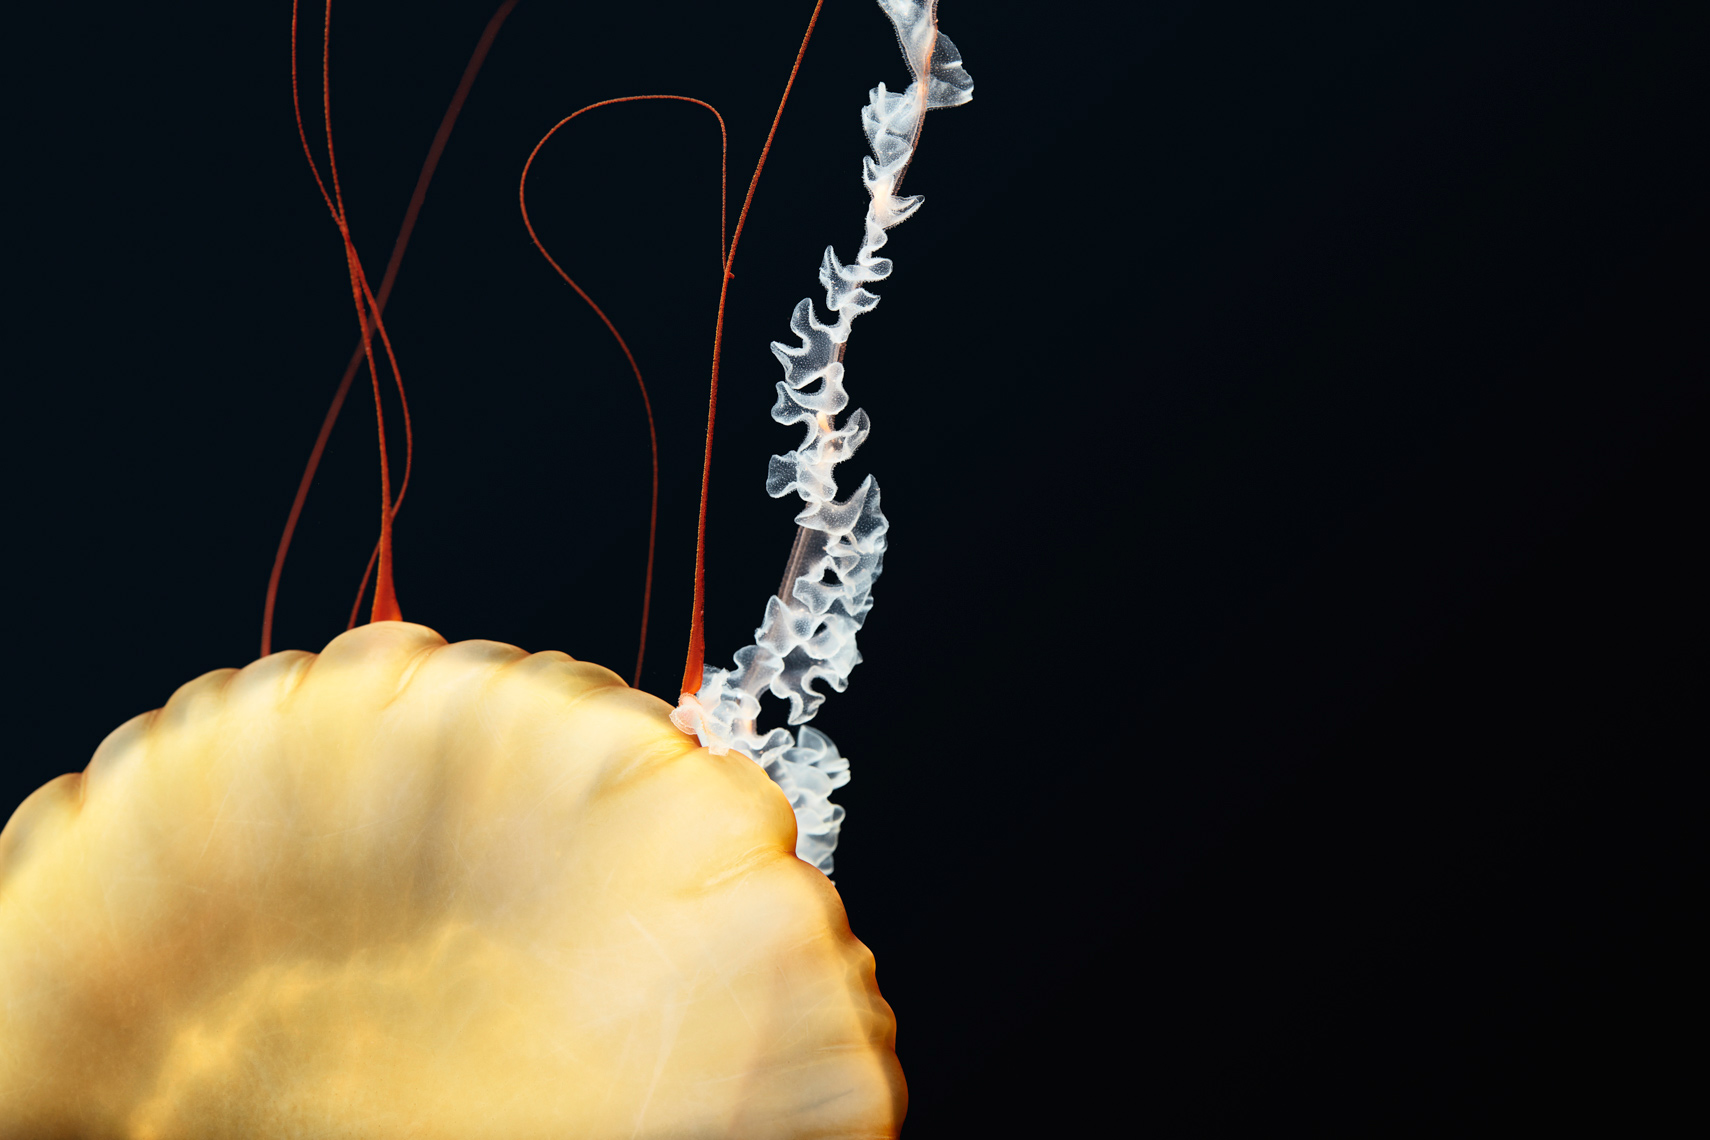 Detail of Pacific Sea Nettle